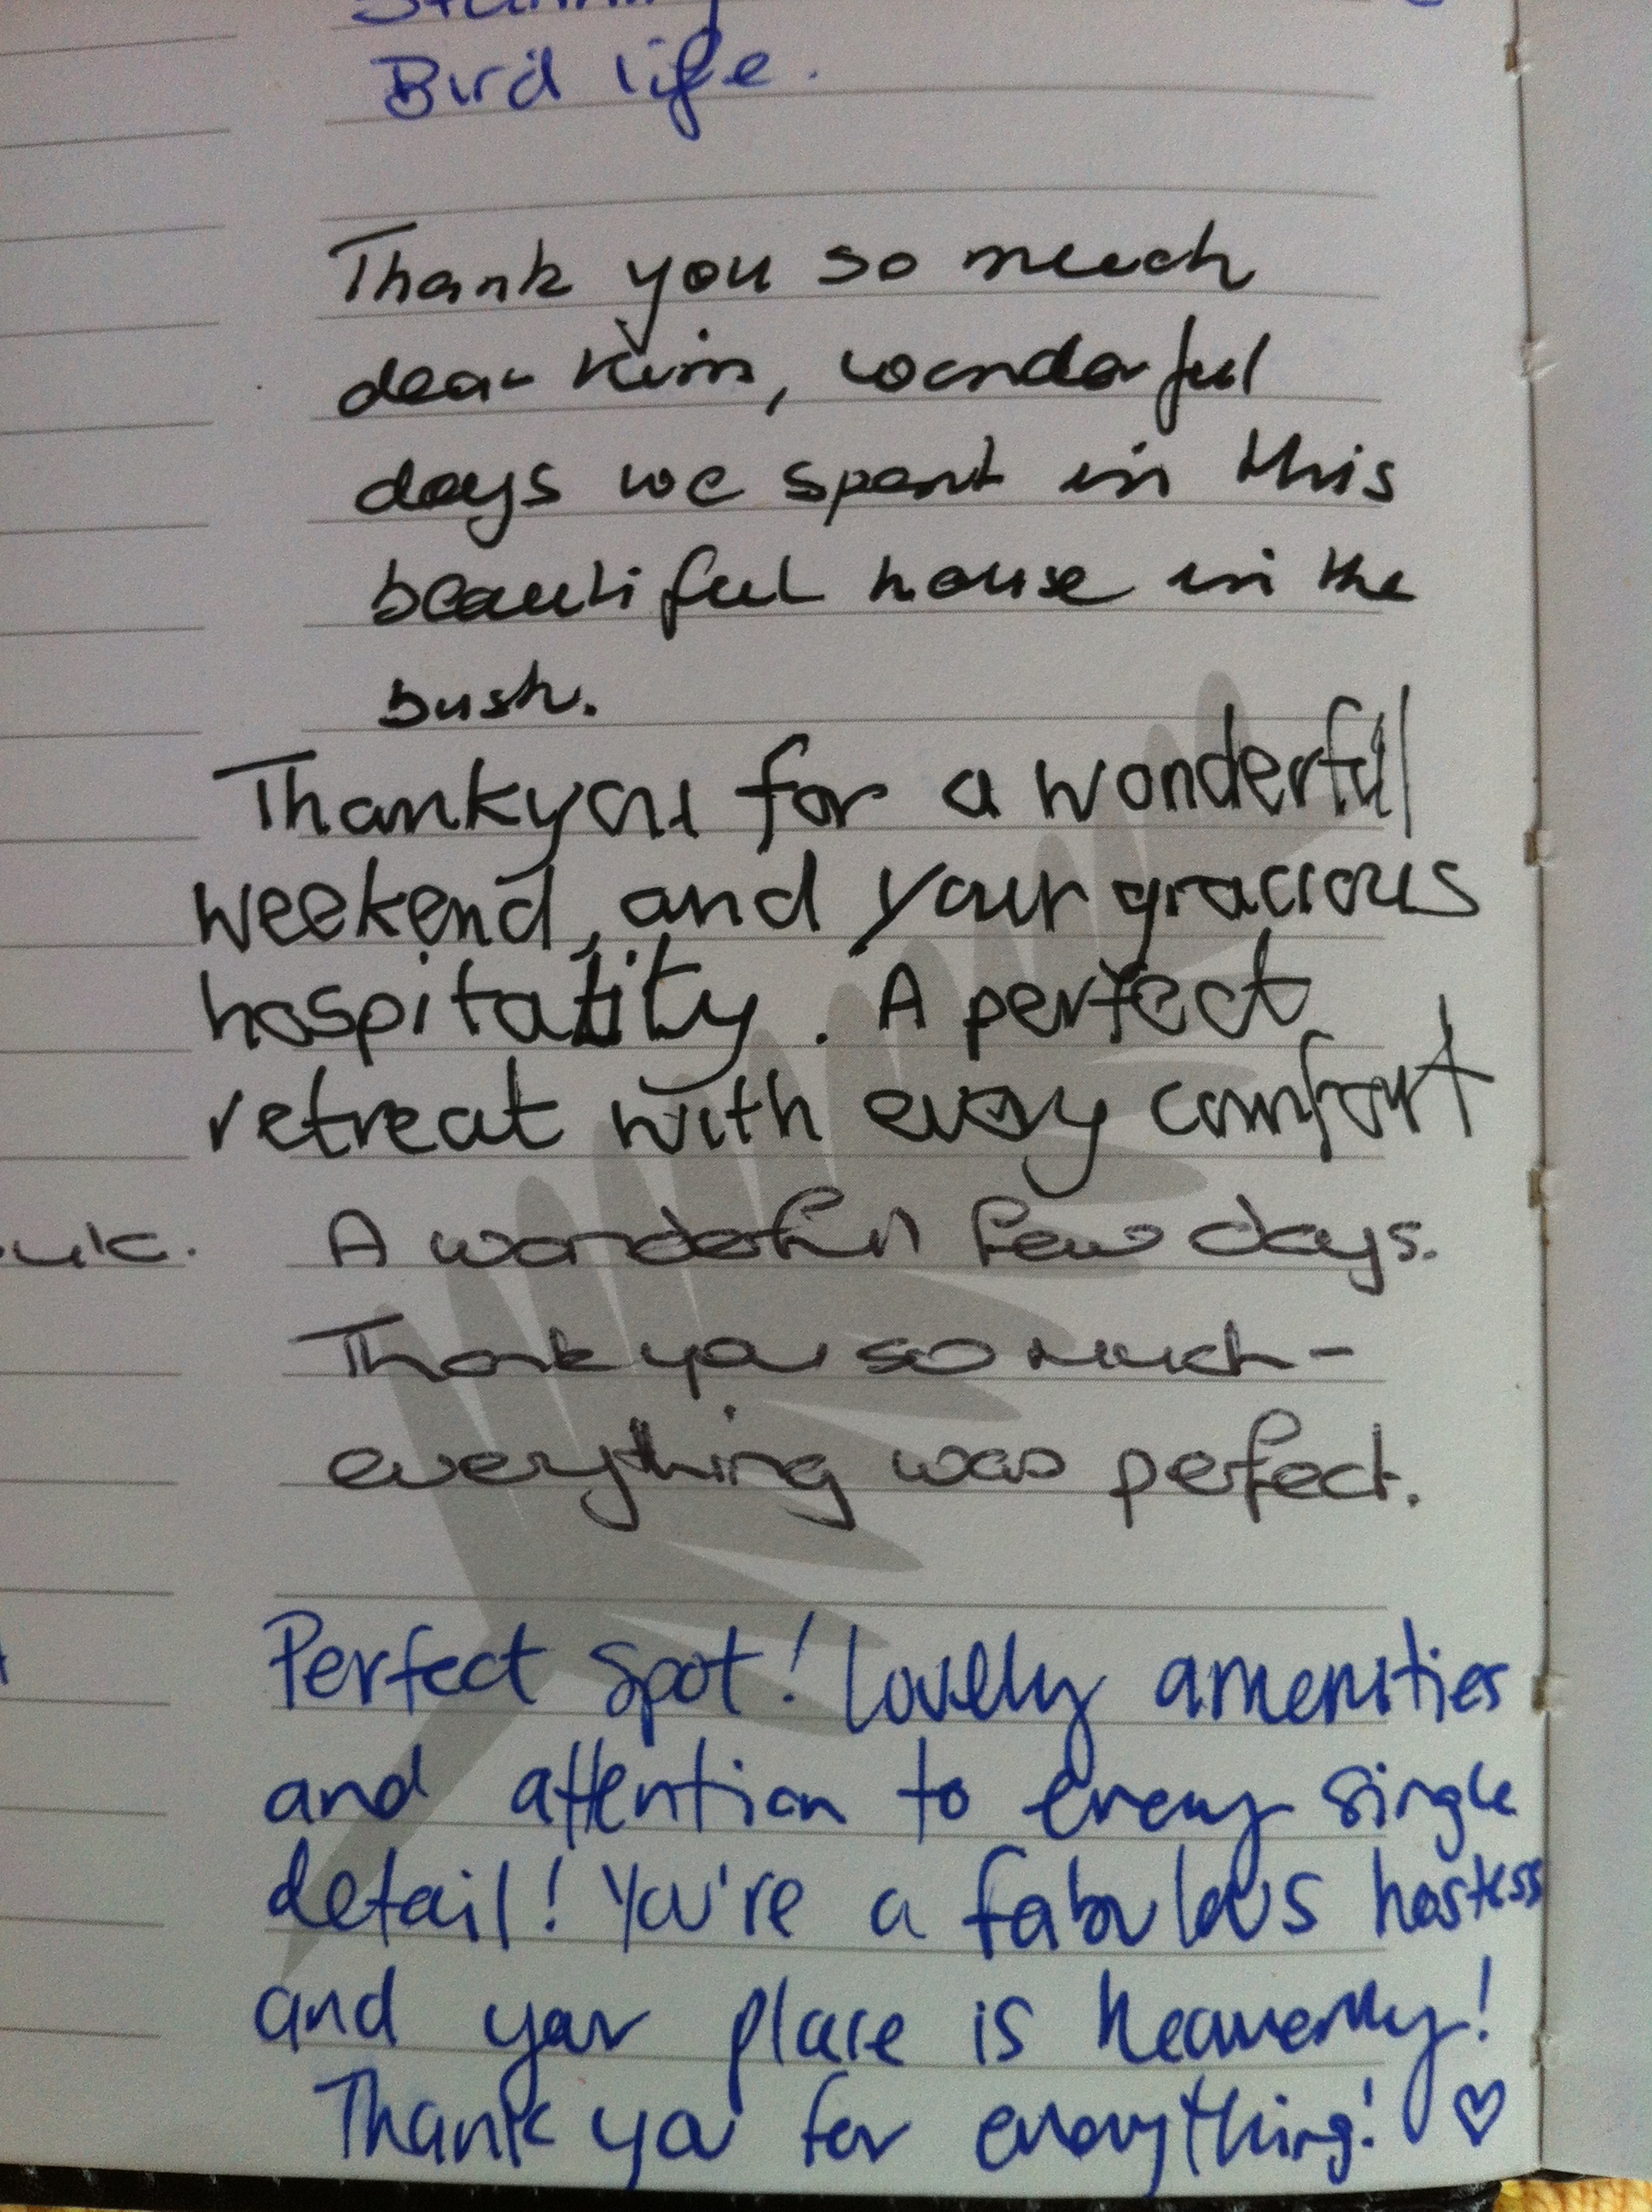 More from the in-house Guest Book